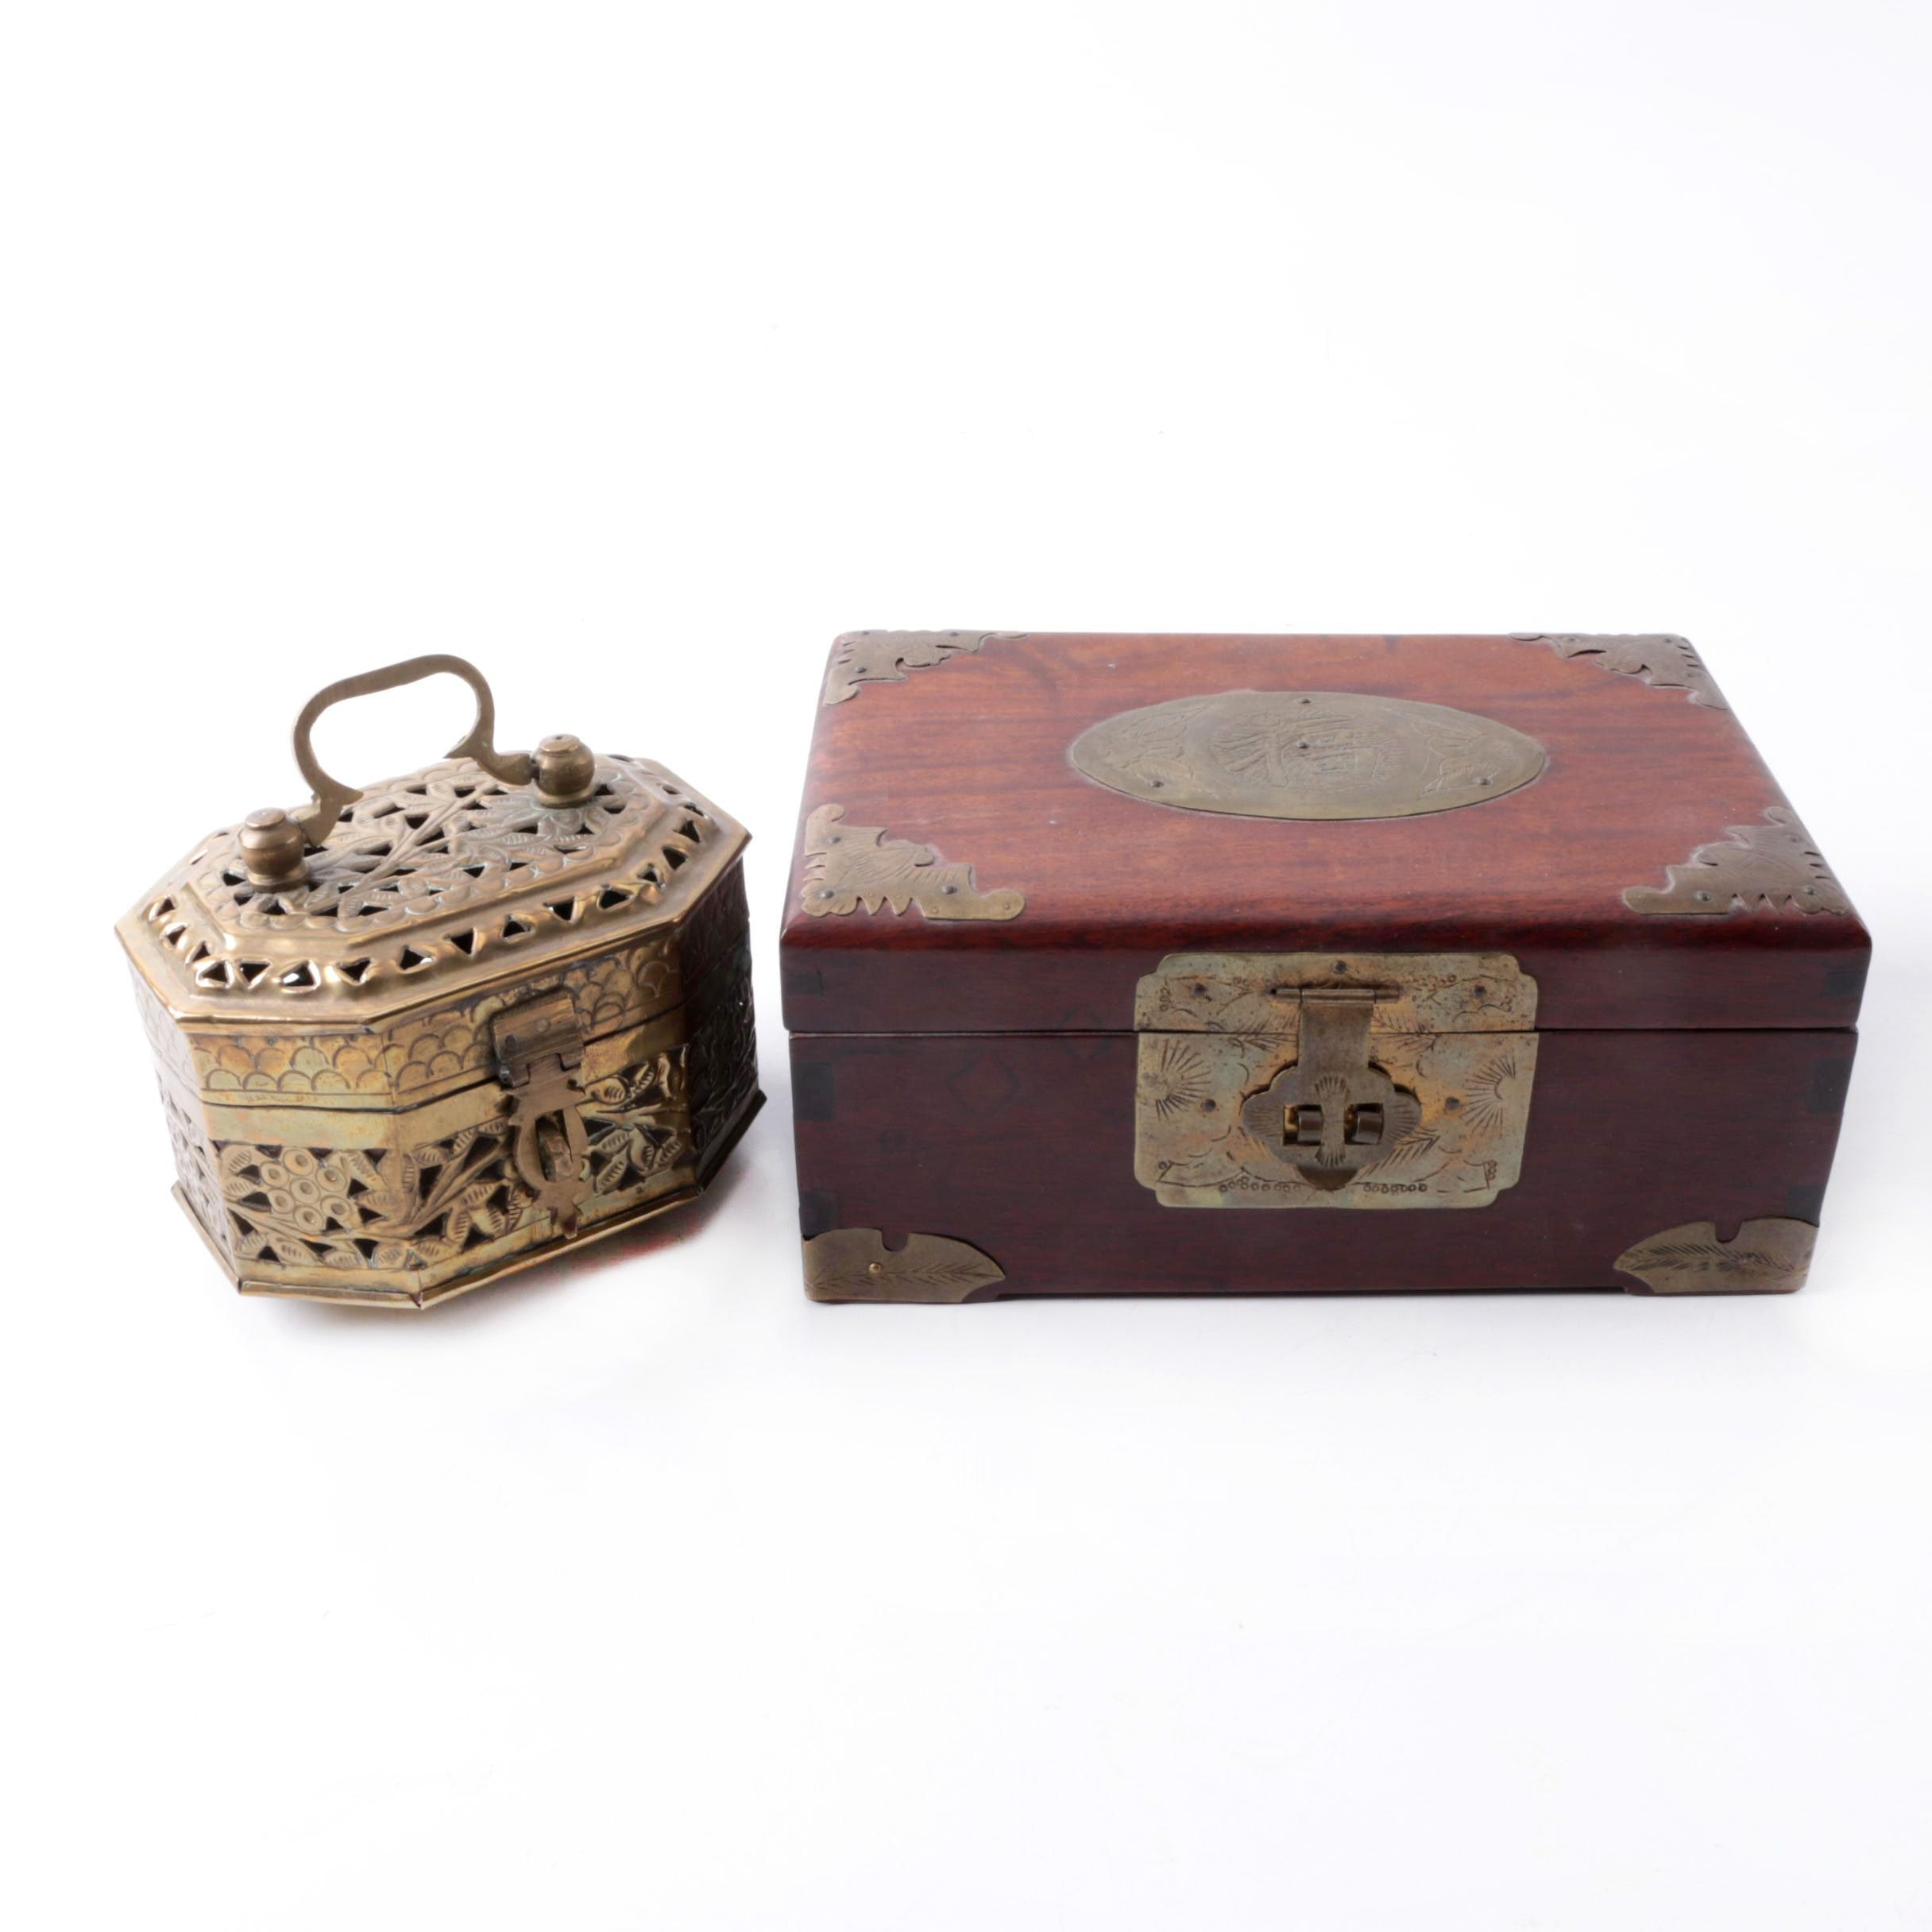 East Asian Handcrafted Brass and Wooden Boxes